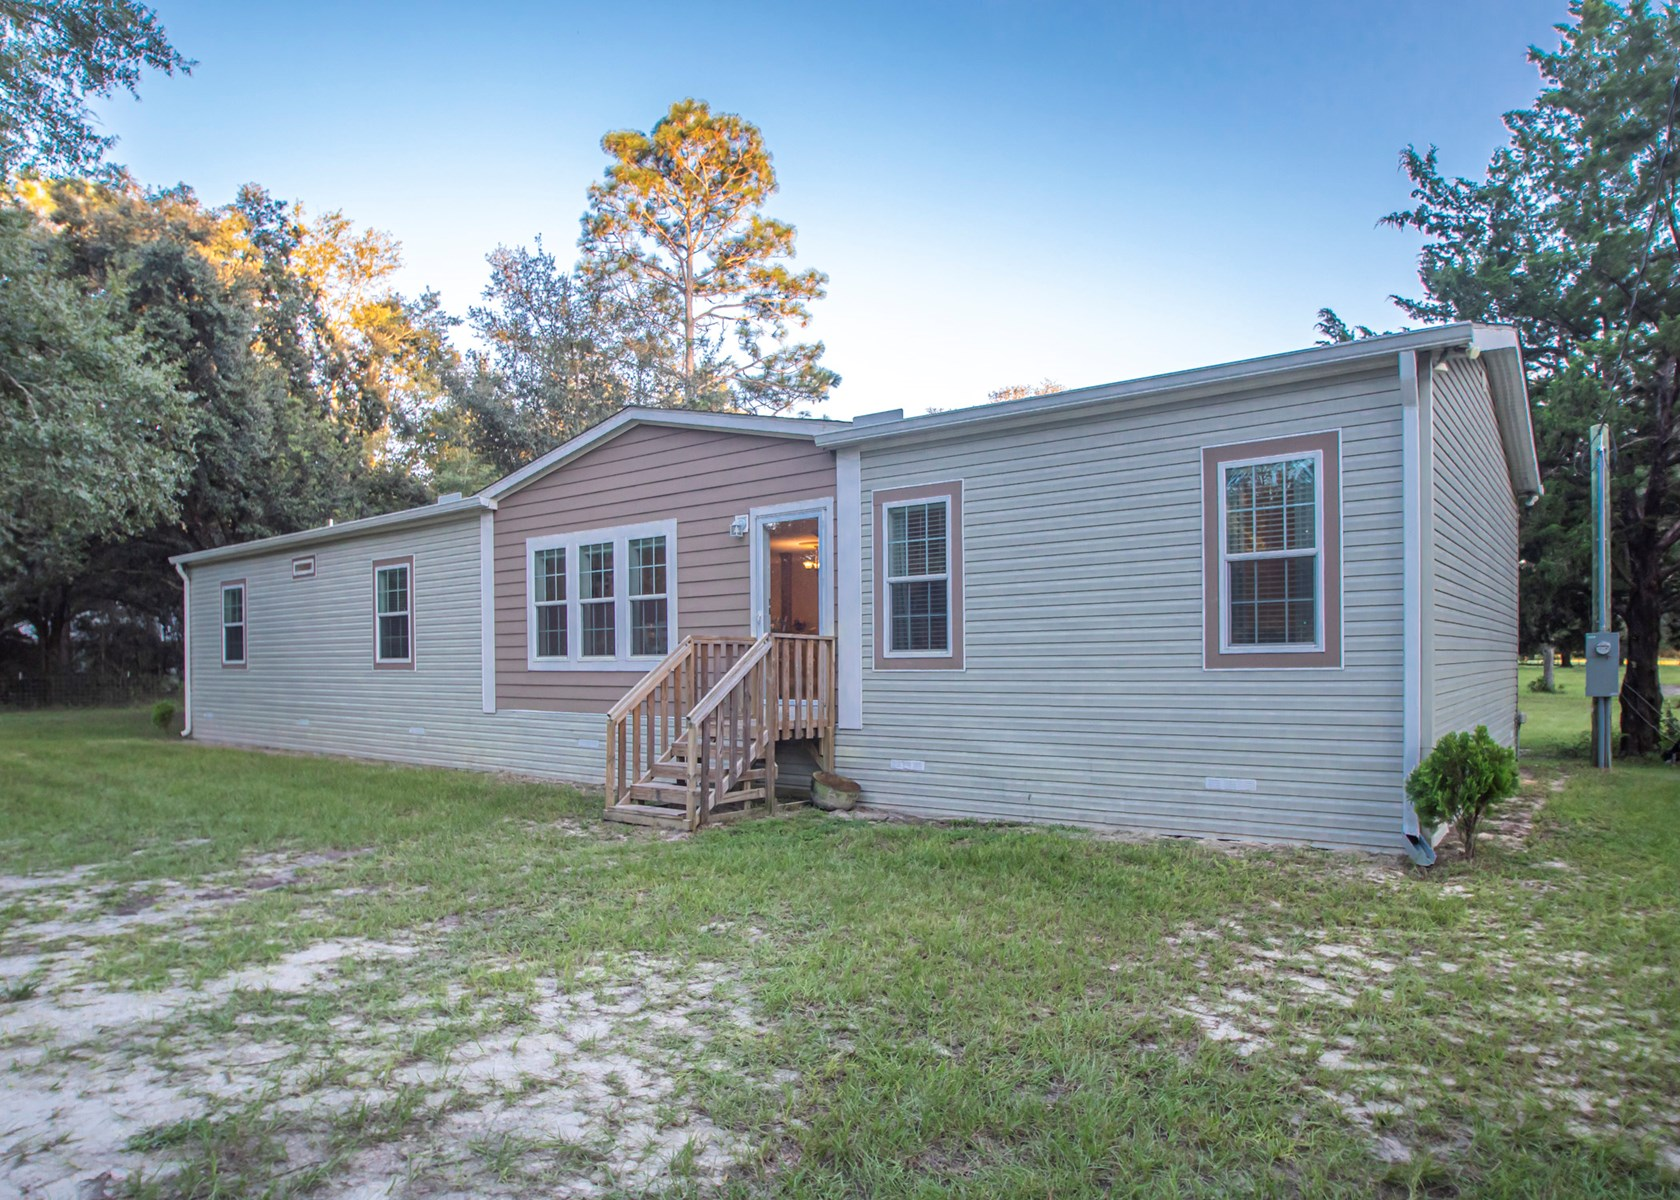 SINGLE FAMILY HOME FOR SALE IN O'BRIEN FLORIDA